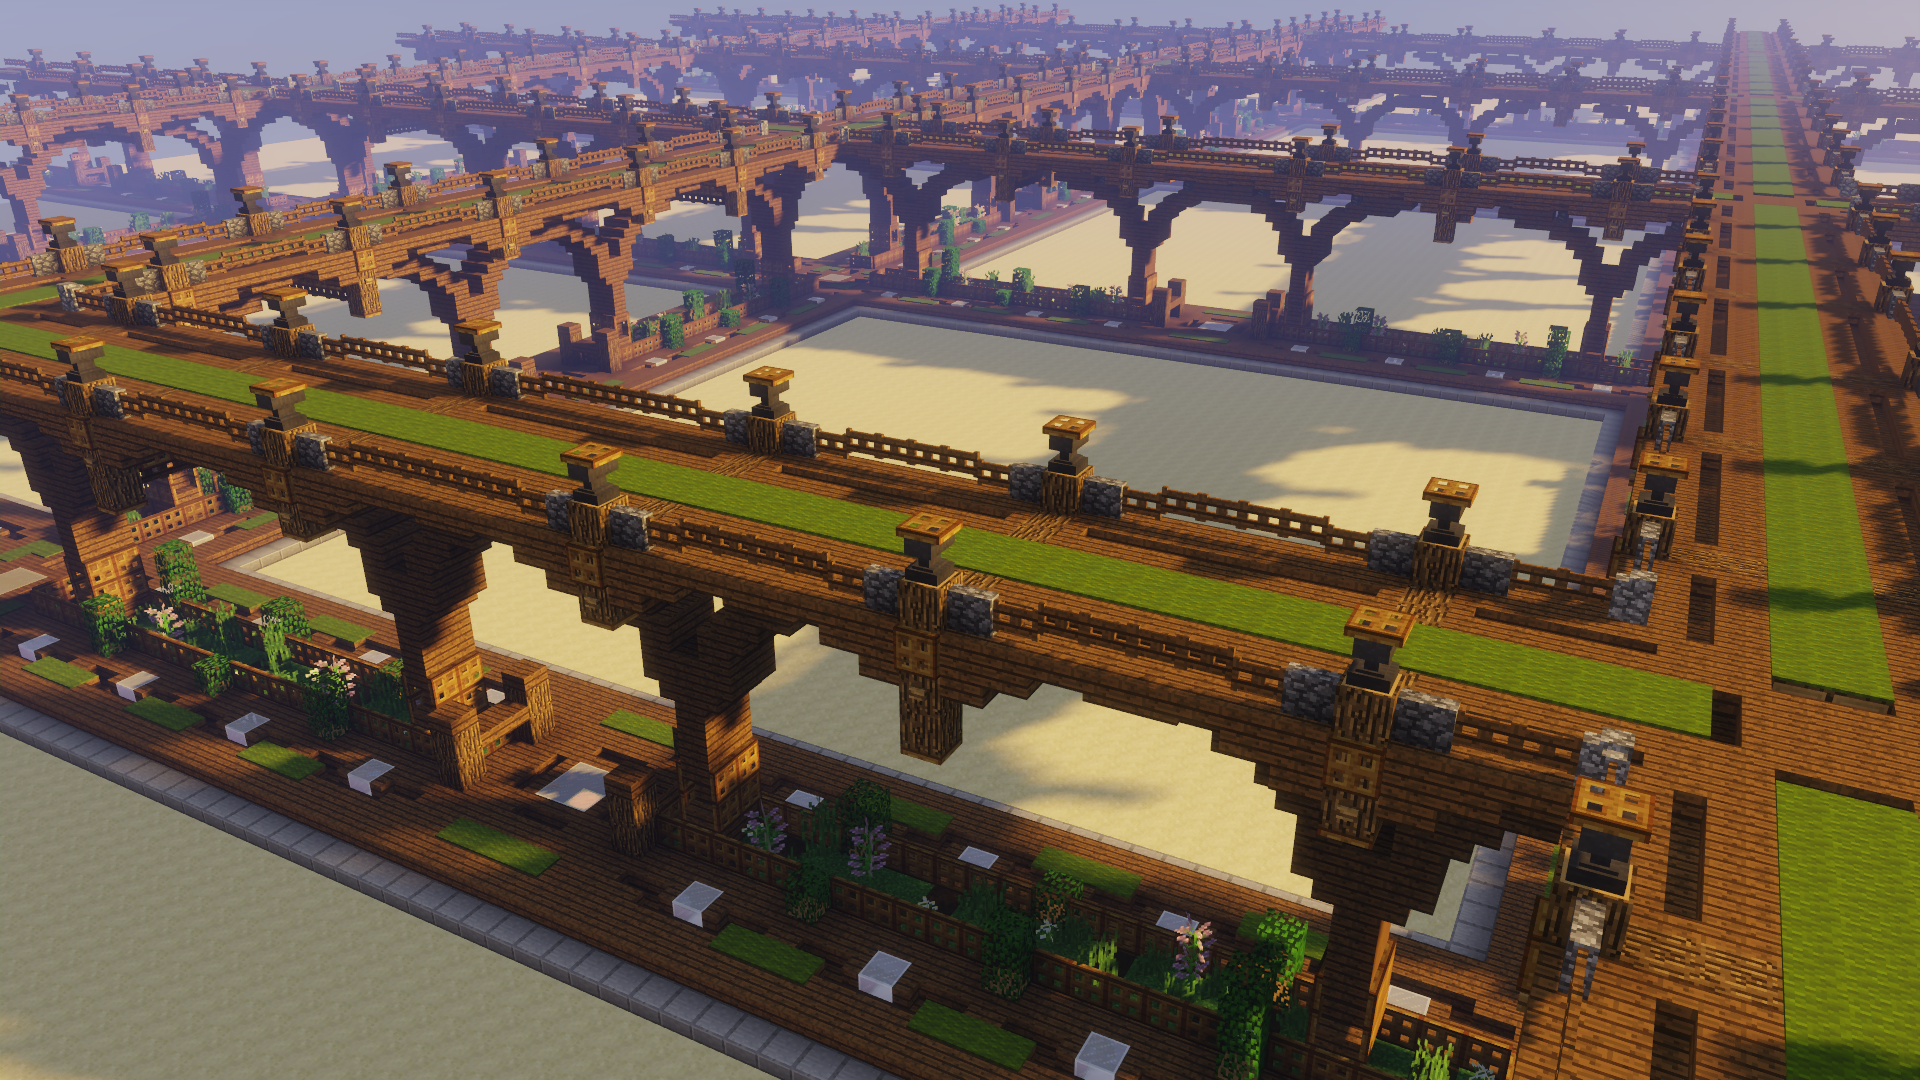 Photo of Custom PlotWorld roads for the Build world on a server I'm working on, thought I'd share!